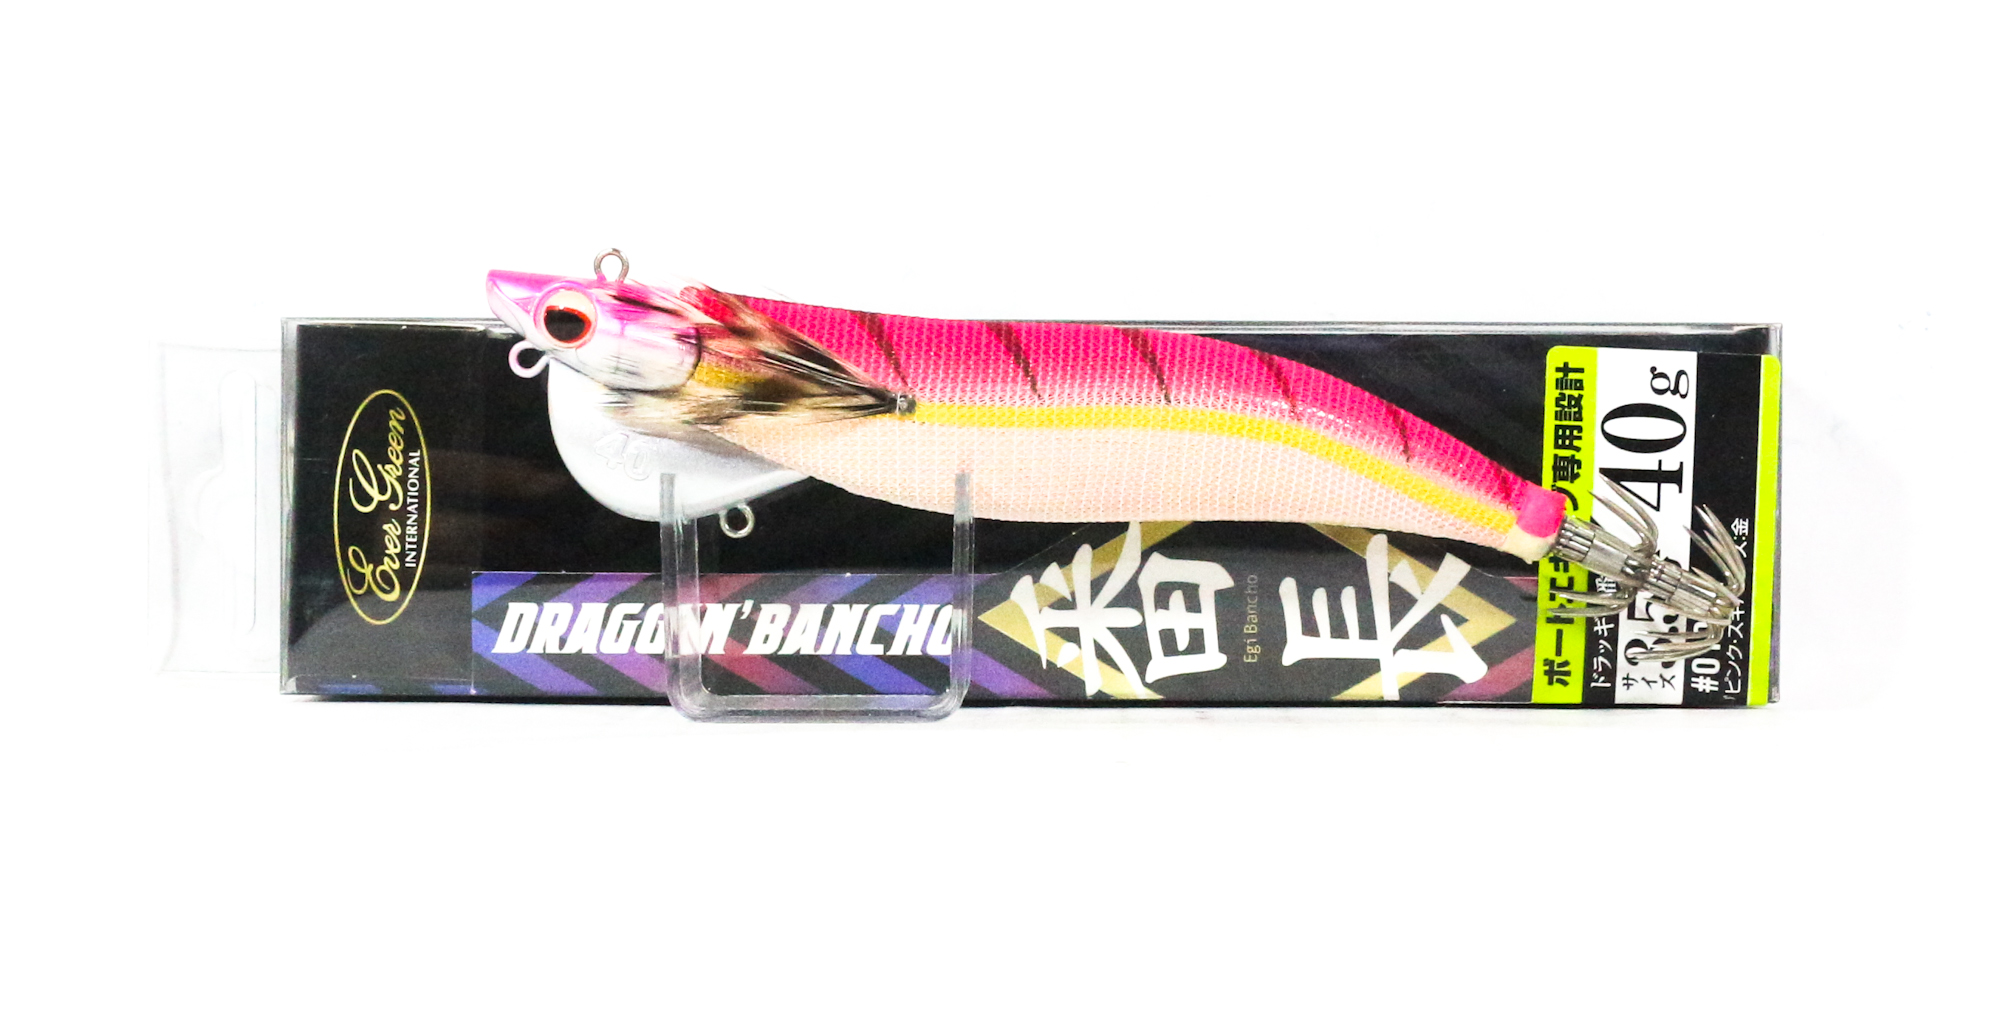 Evergreen Draggin Bancho Squid Jig Lure 3.5 40 grams 0101G (0565)